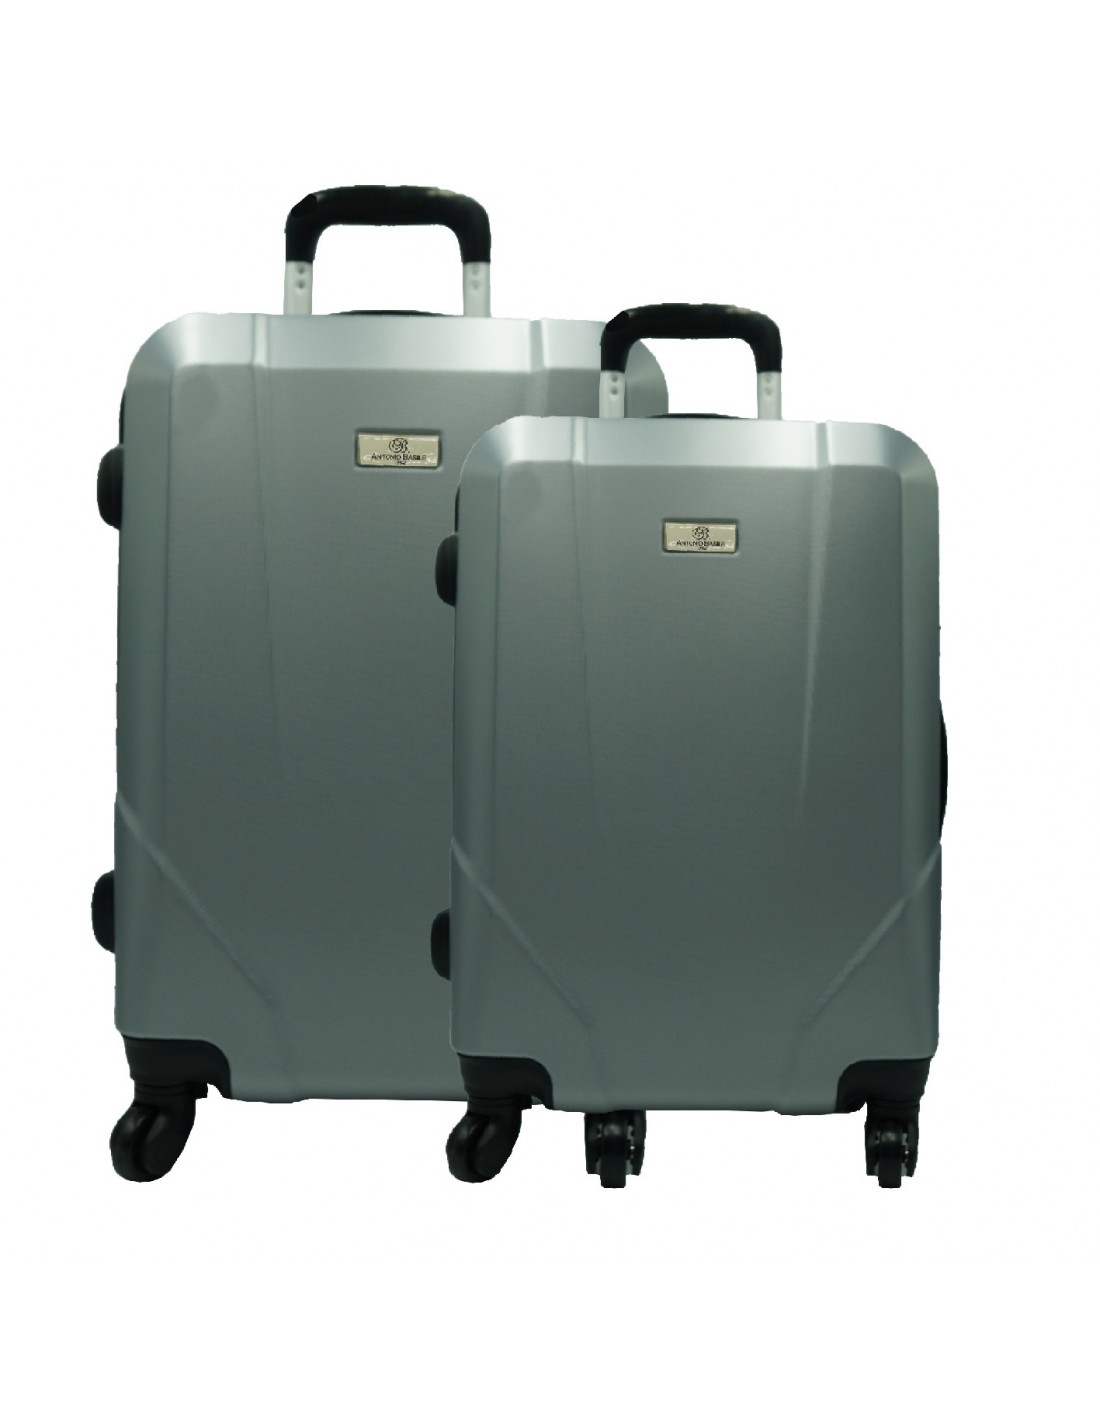 SET TROLLEY 2 PCS RUIAN13_8067 1/RUIAN13_8067